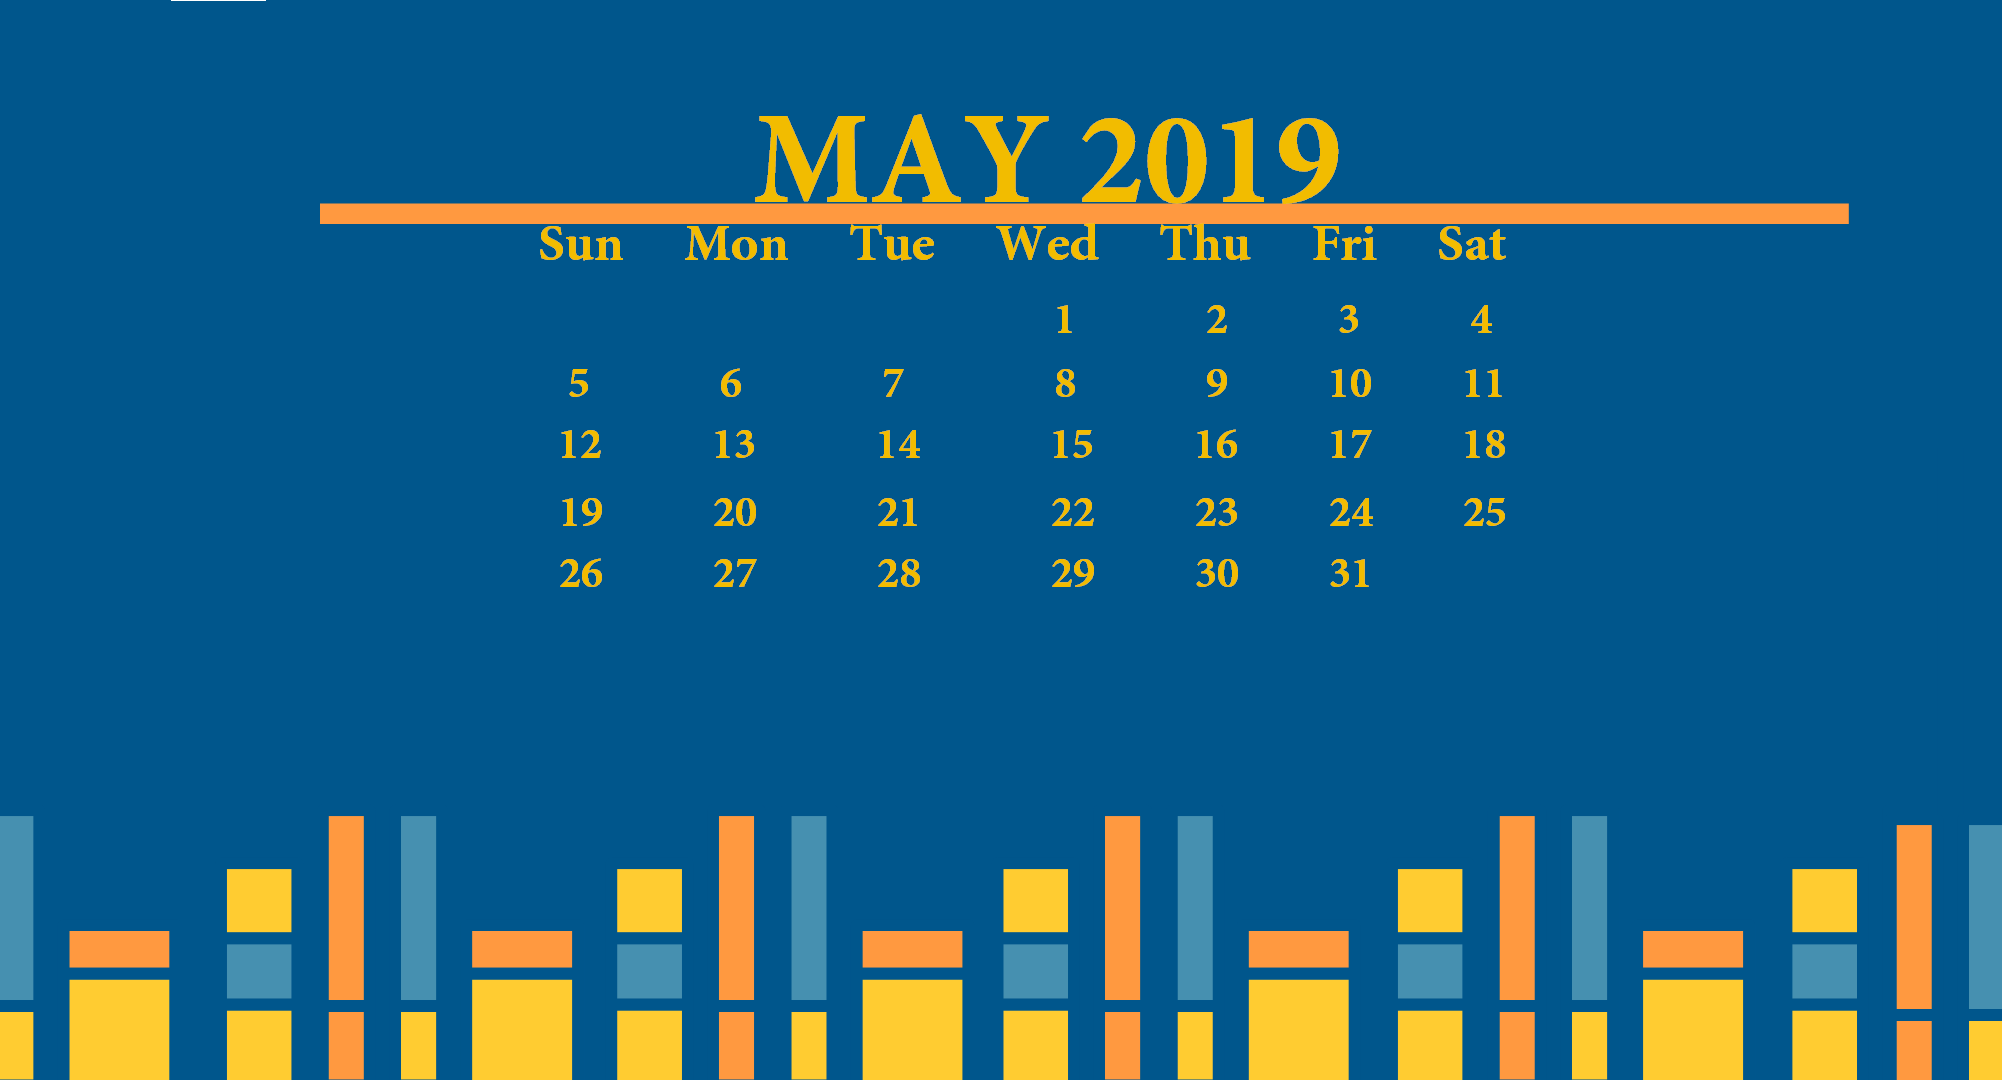 May 2019 Desktop Wallpaper With Calendar